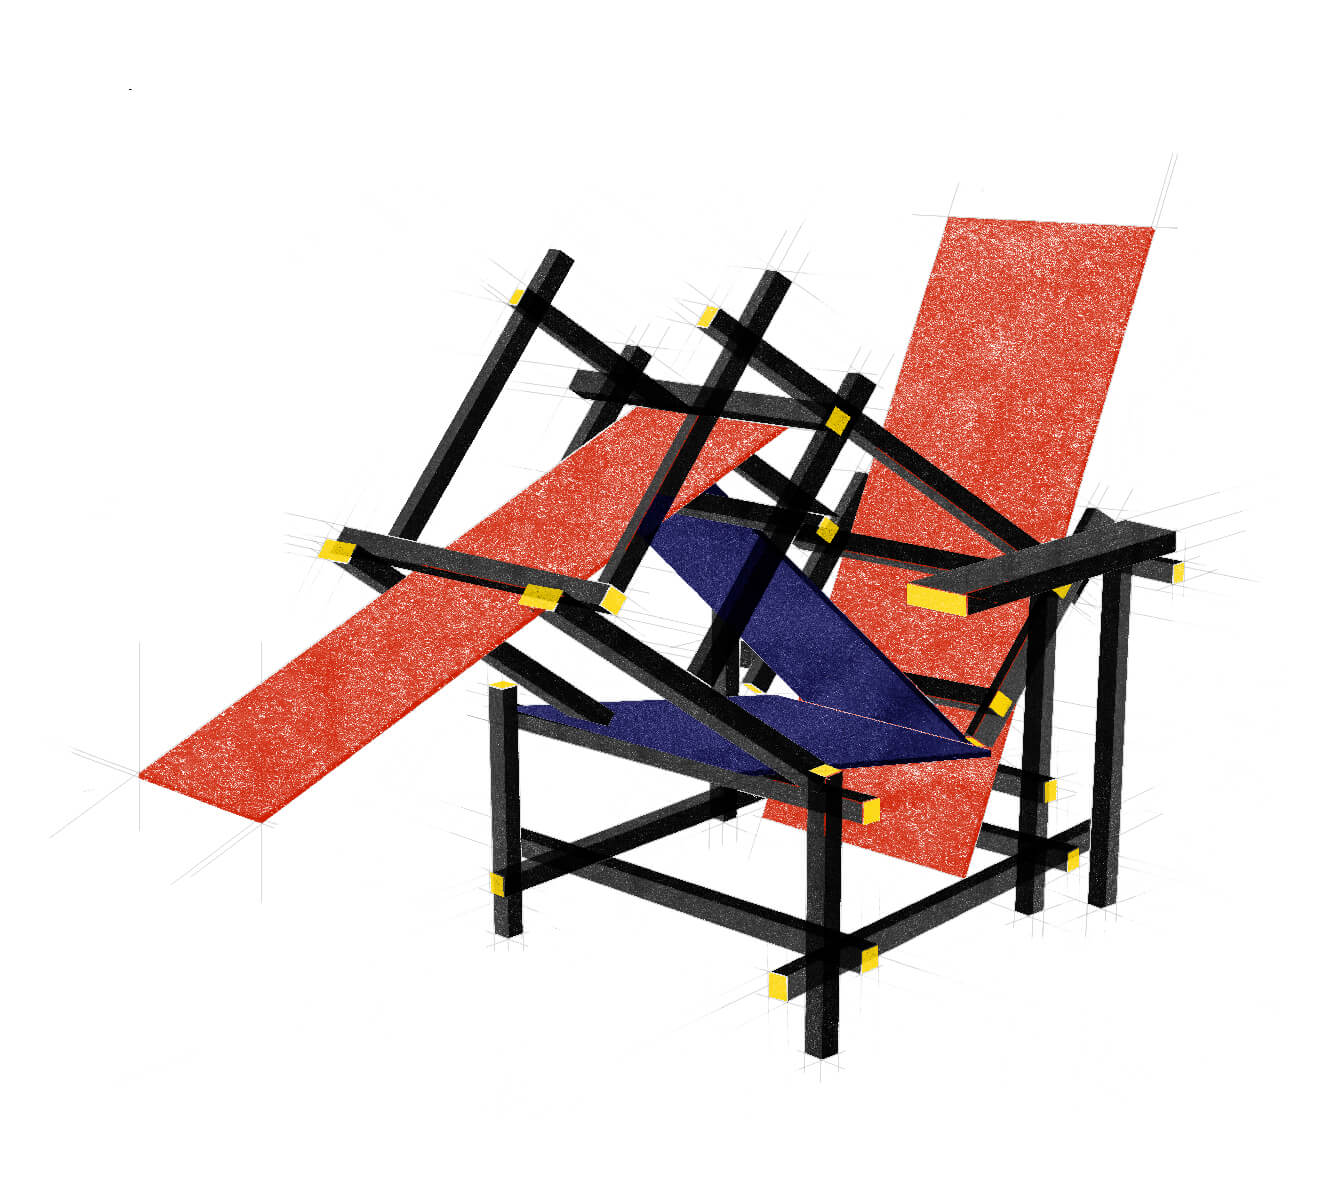 Two Schröder chairs attempting to have sex